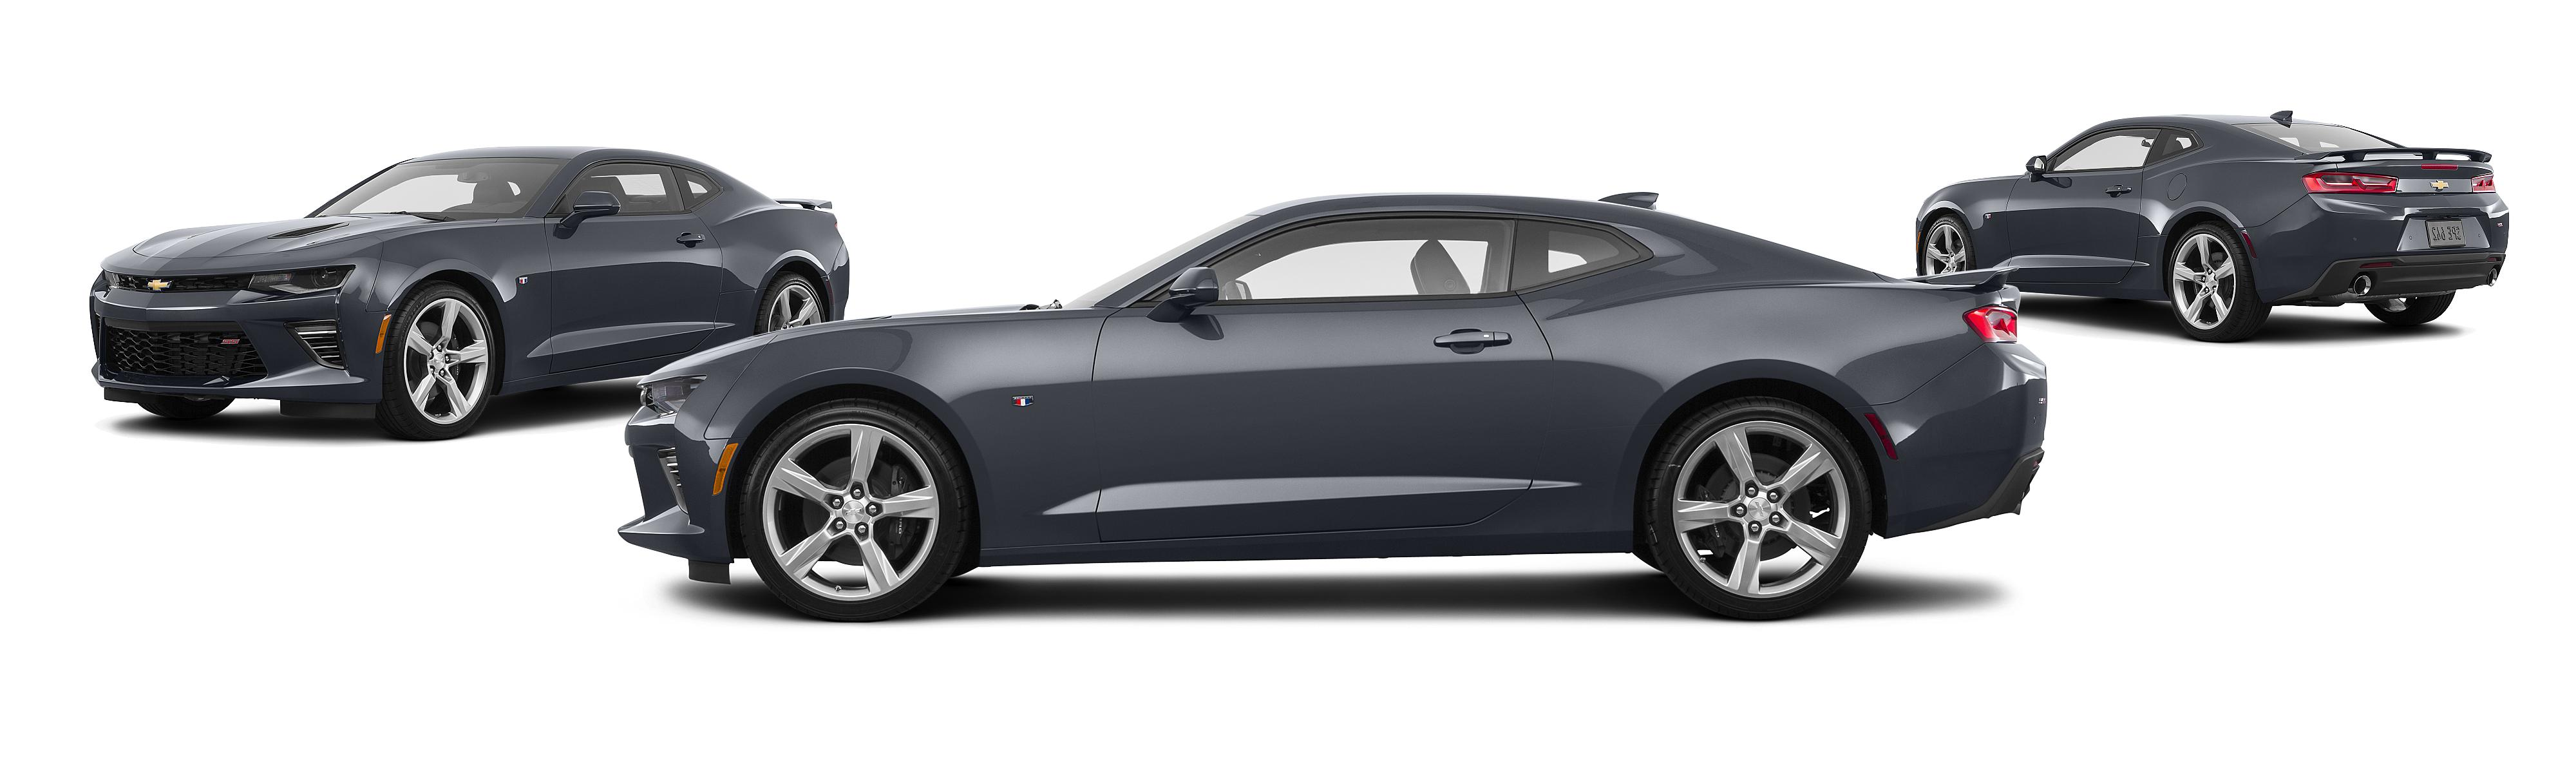 2018 chevrolet camaro ss 2dr coupe w 2ss research groovecar rh groovecar com